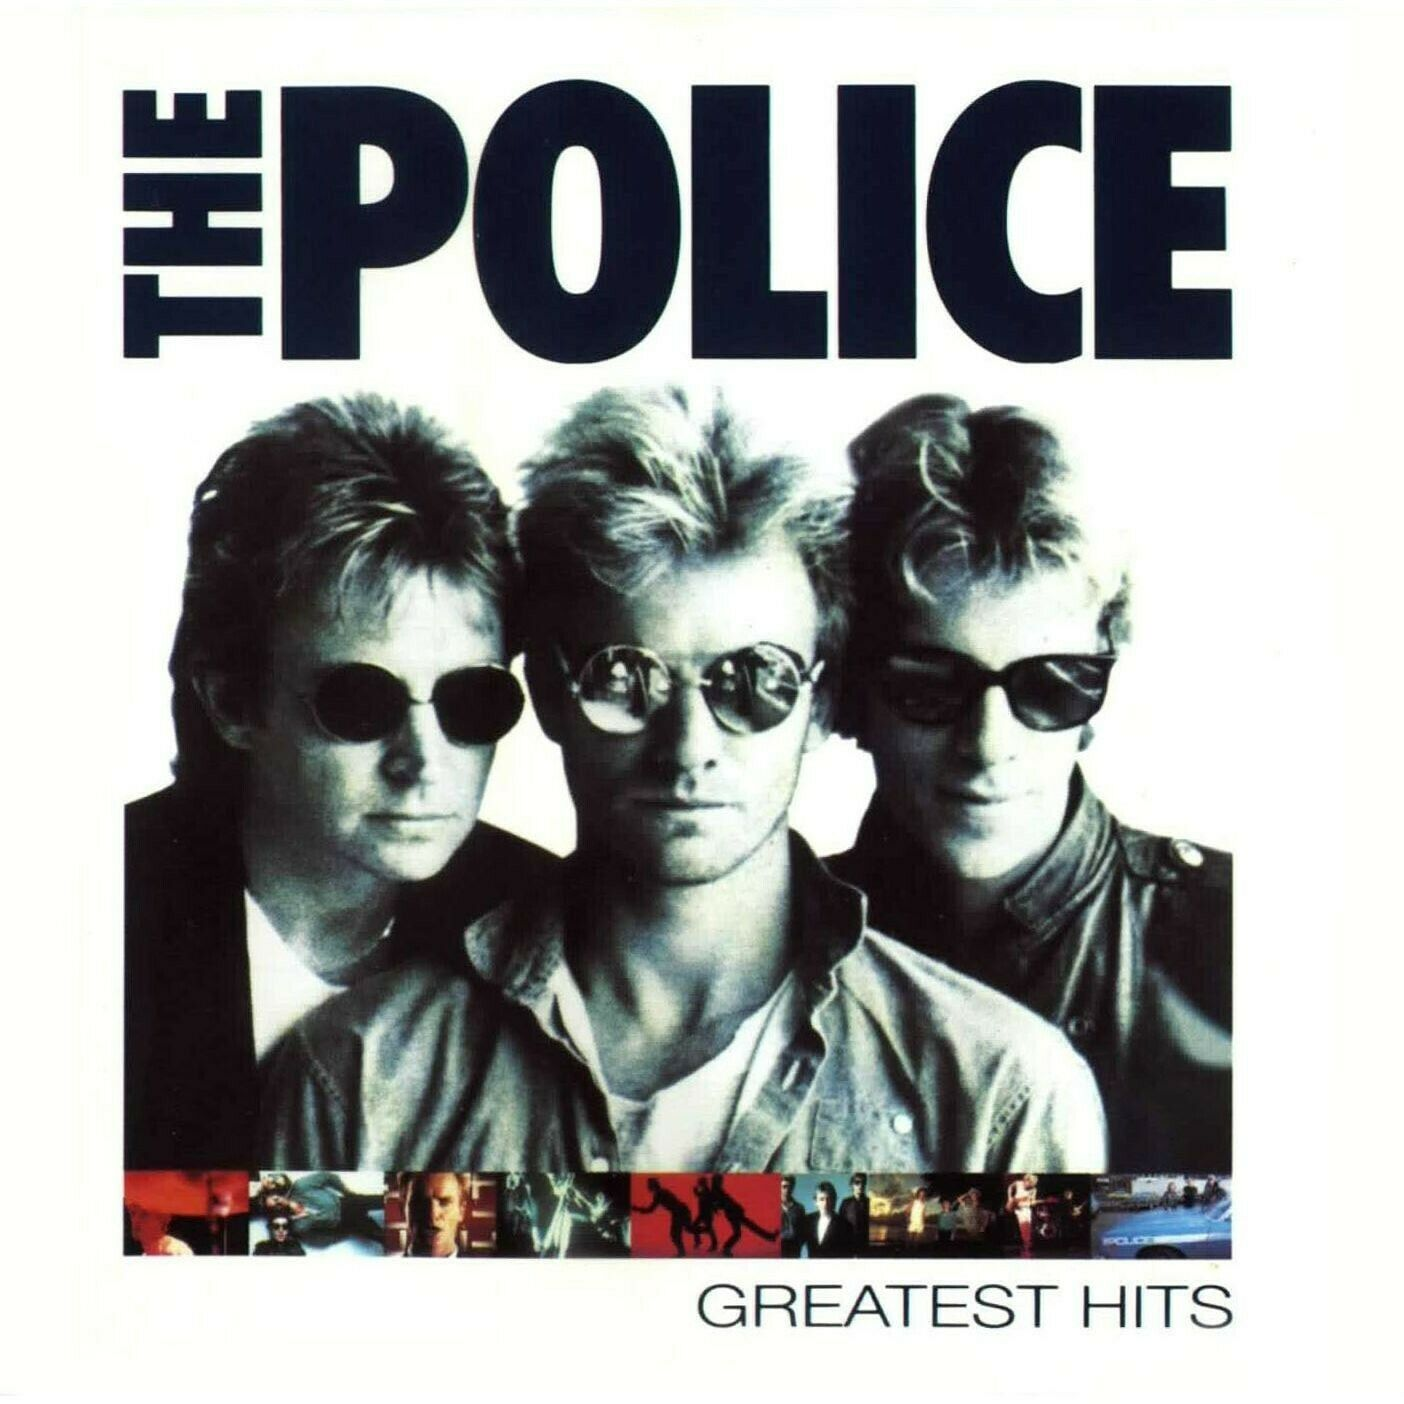 The Police - Greatest Hits - CD /plast/